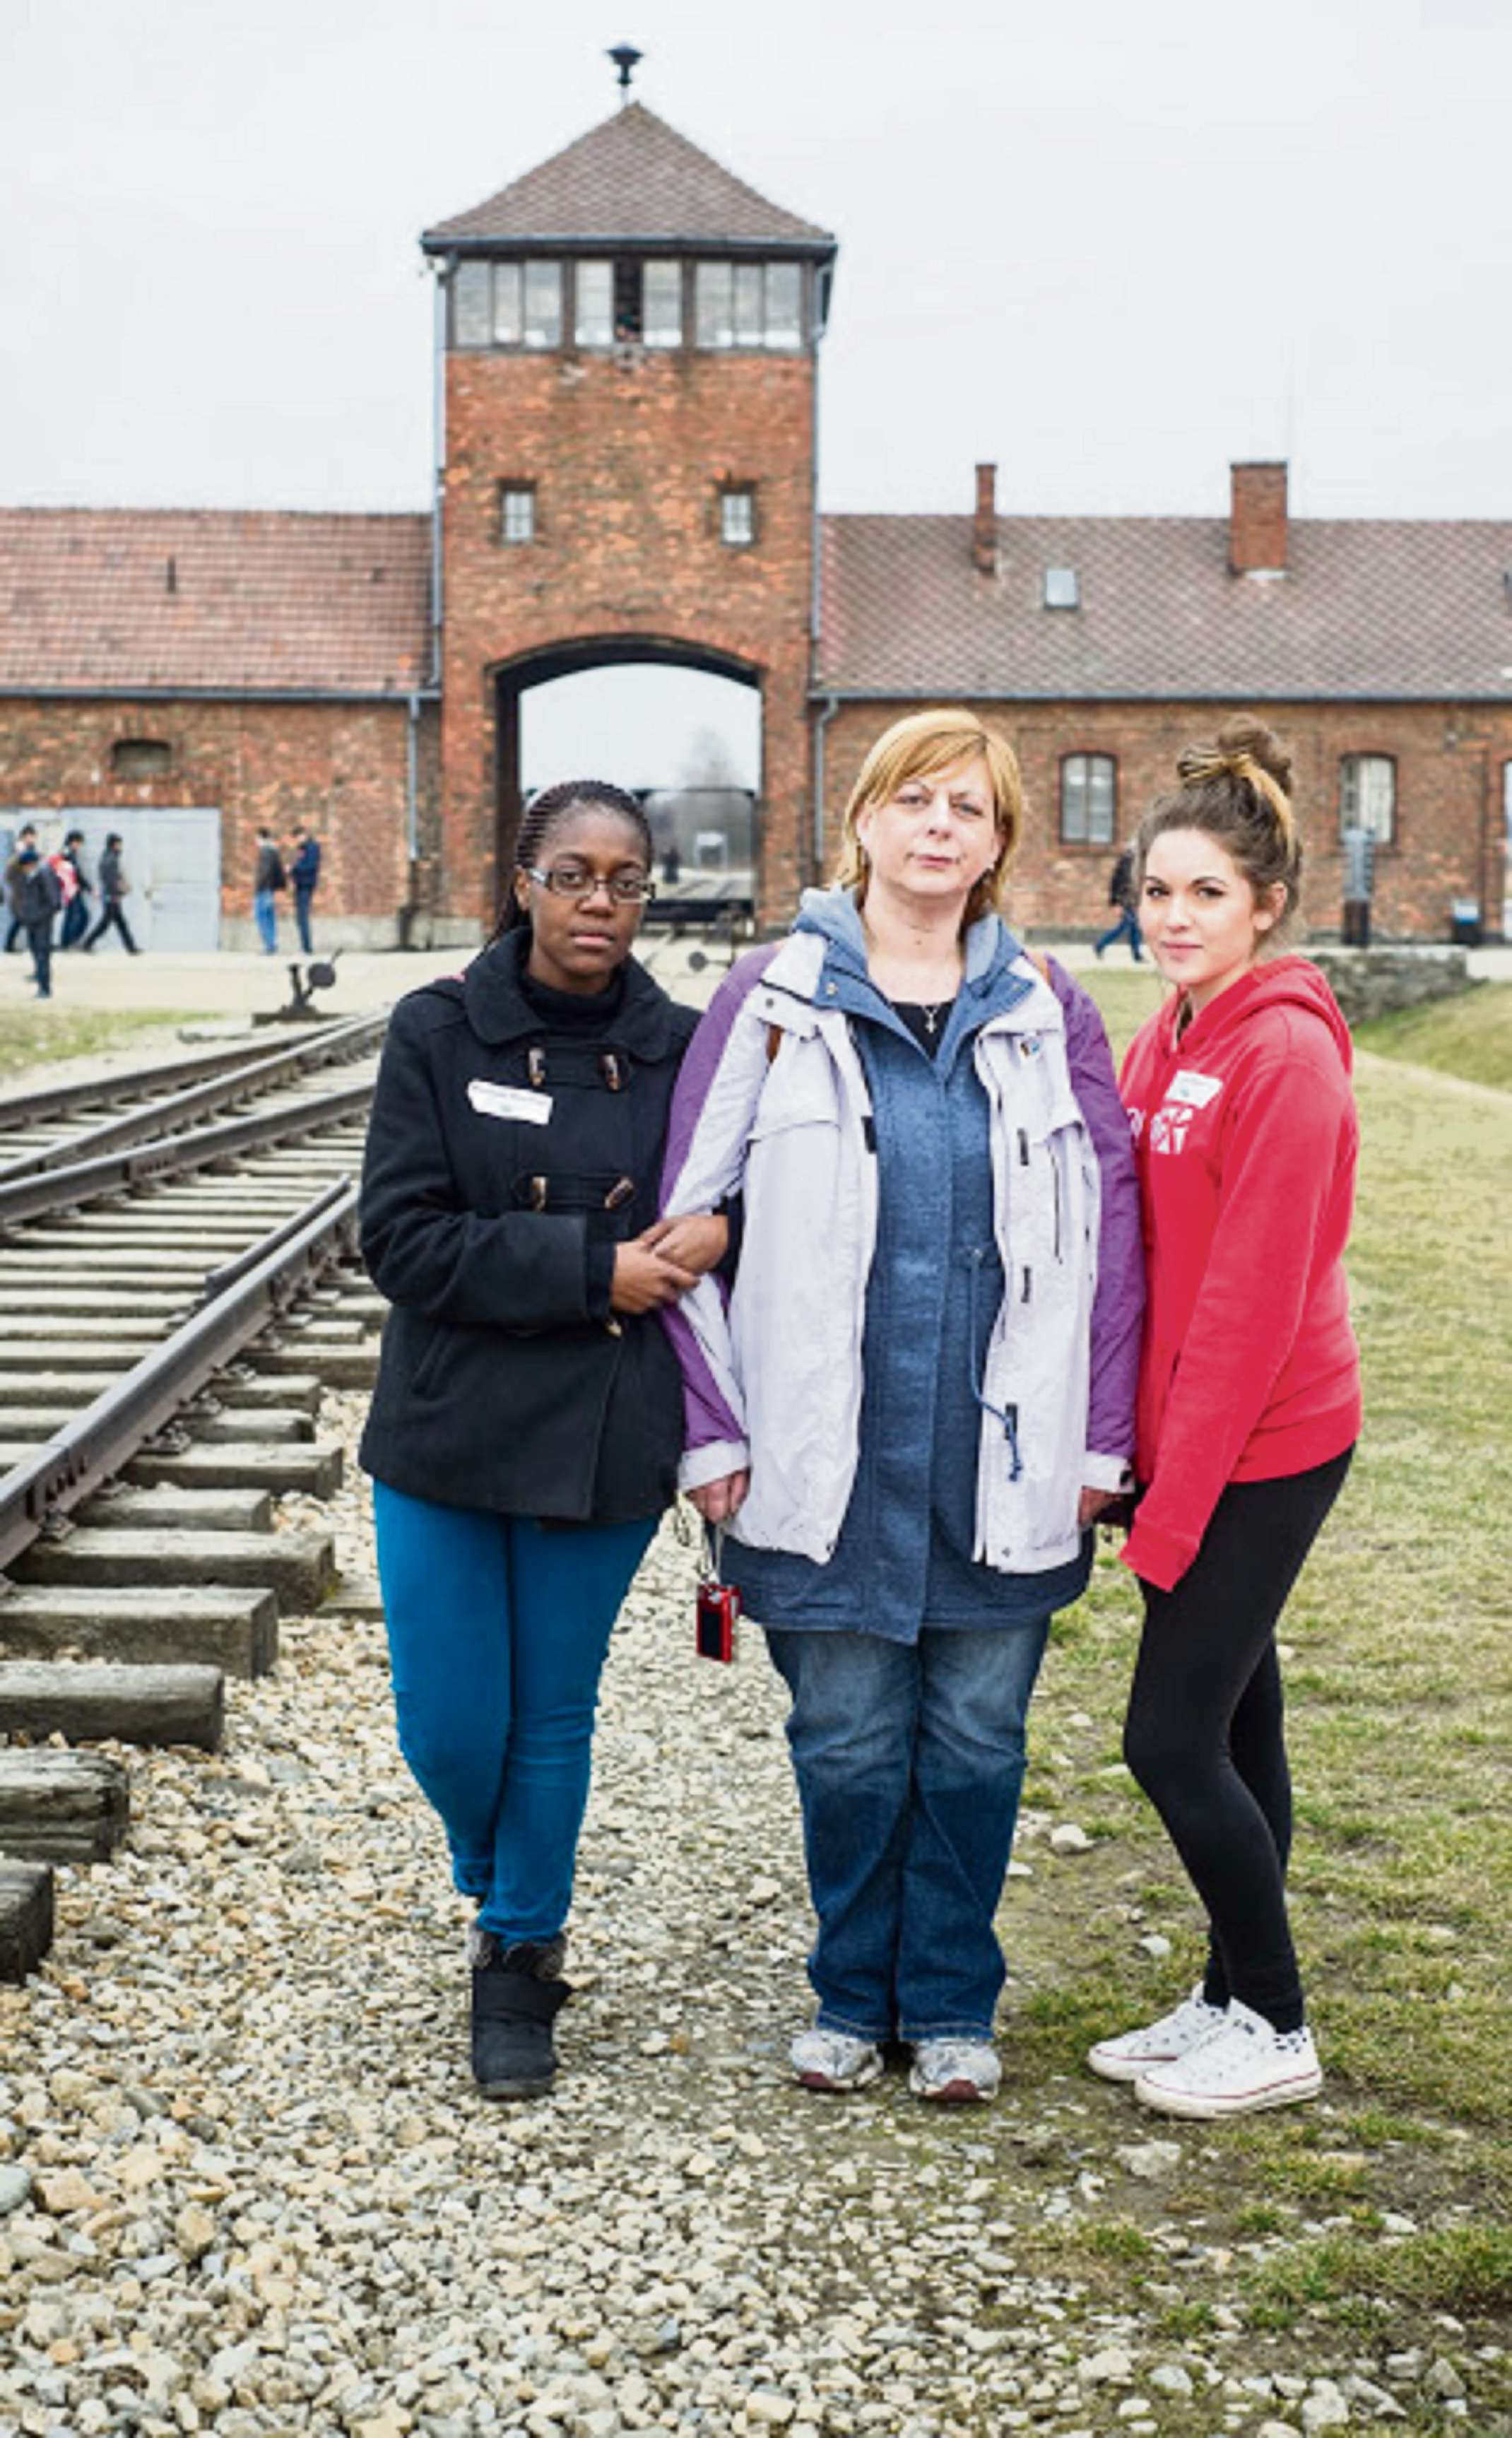 Dudley students visit Auschwitz - the worst crime scene in human history